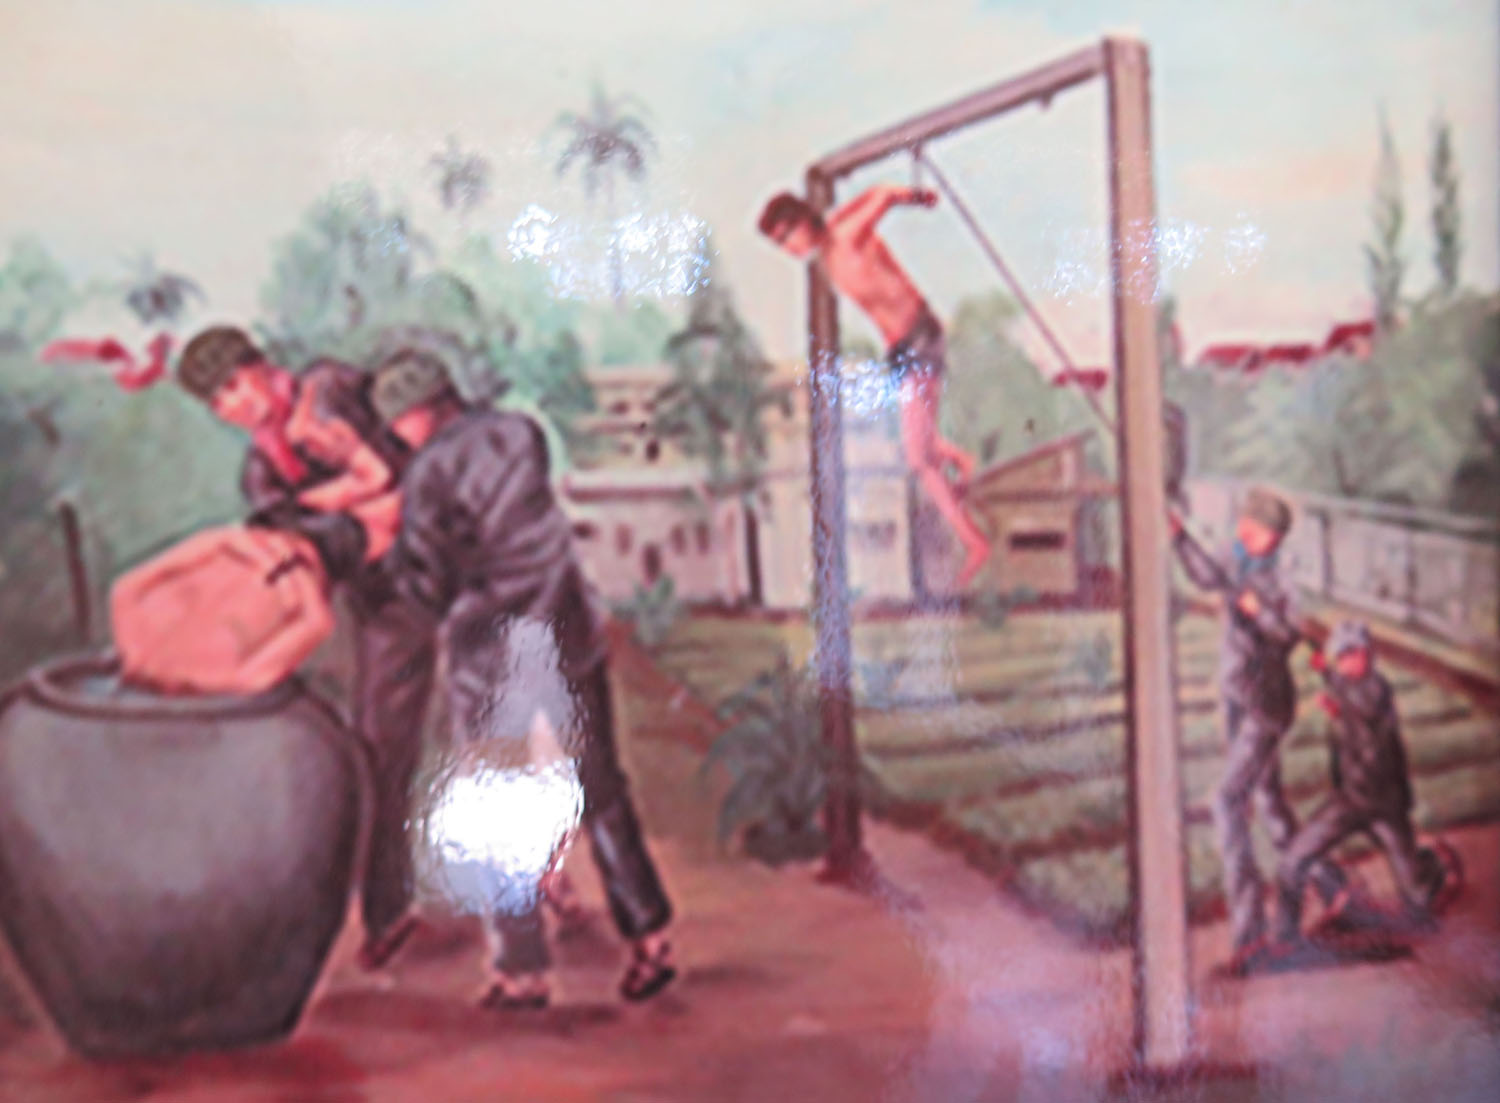 Cambodia-The-Killing-Fields-S-21-Torture